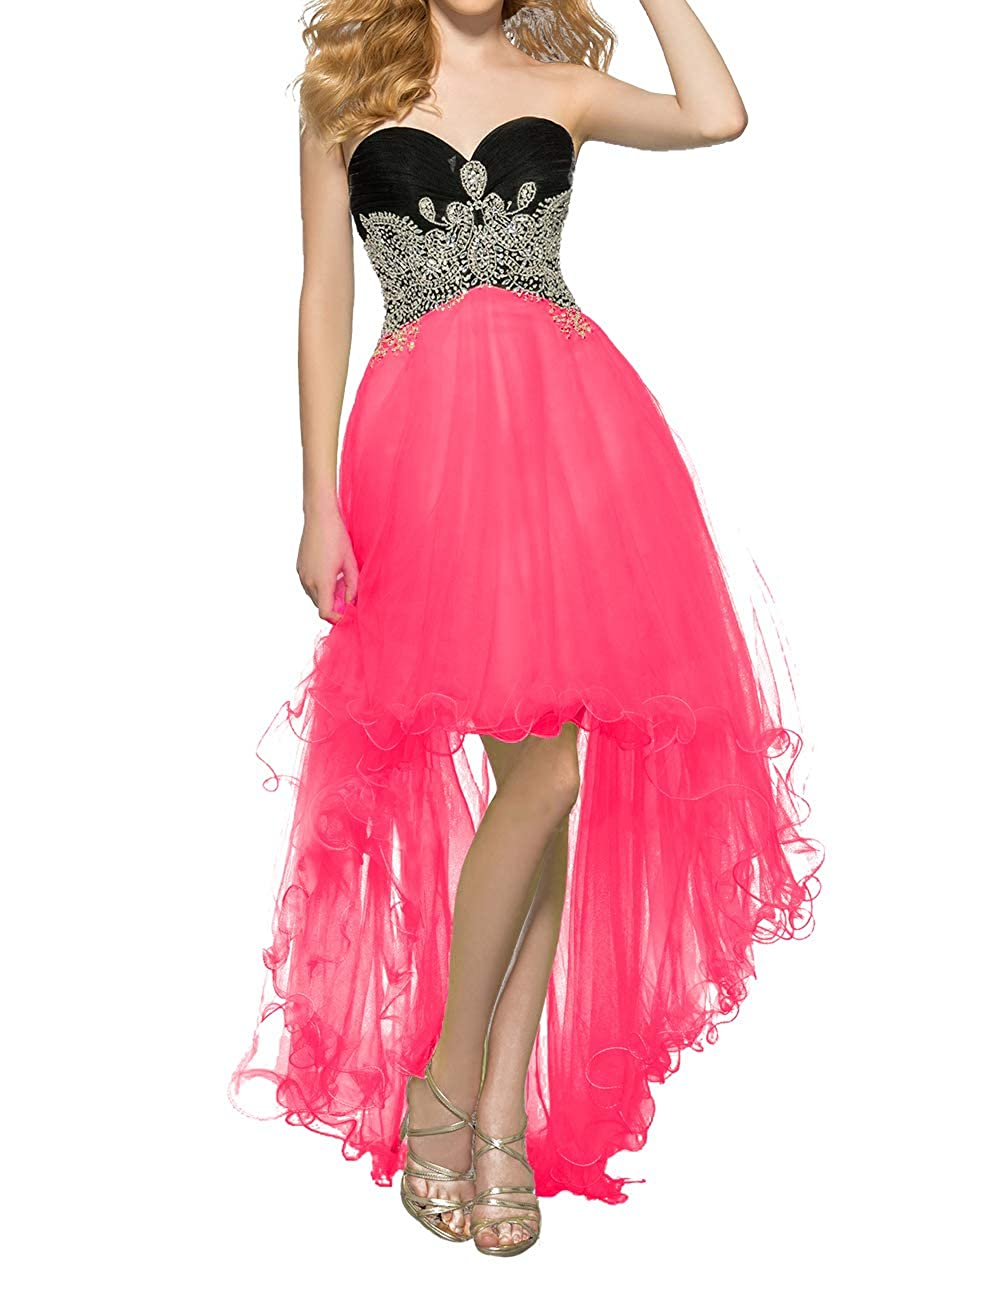 Hot Pink Uther Women's Tulle HiLow Beaded Prom Dresses Strapless Evening Homecoming Cocktail Gowns